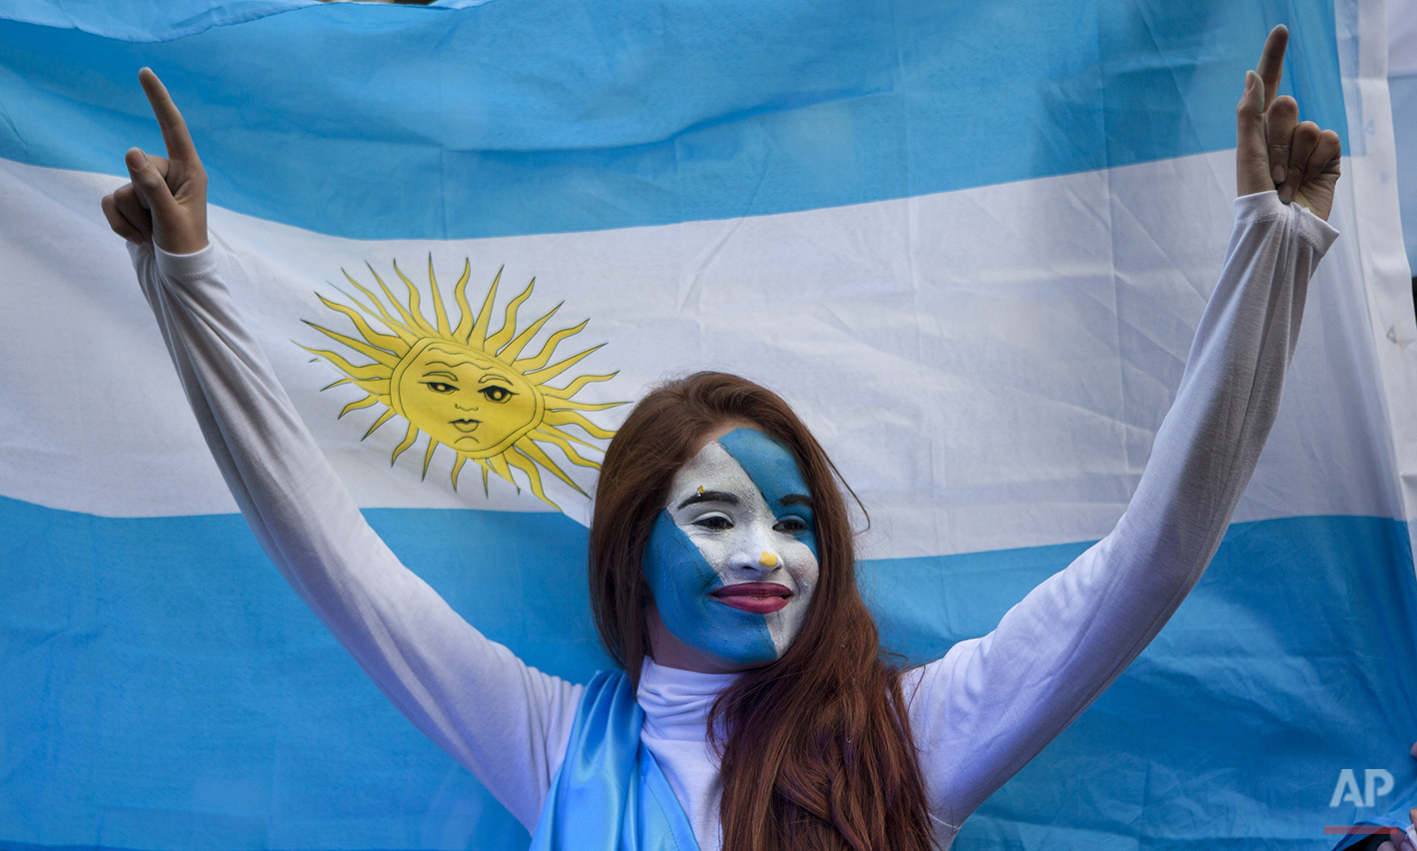 An Argentina soccer fan poses in front of an Argentine flag before a World Cup semifinal match between Argentina against Netherlands, on a street where an outdoor screen has been set for viewing, in Buenos Aires, Argentina, Wednesday, July 9, 2014. (AP Photo/Eduardo Di Baia)